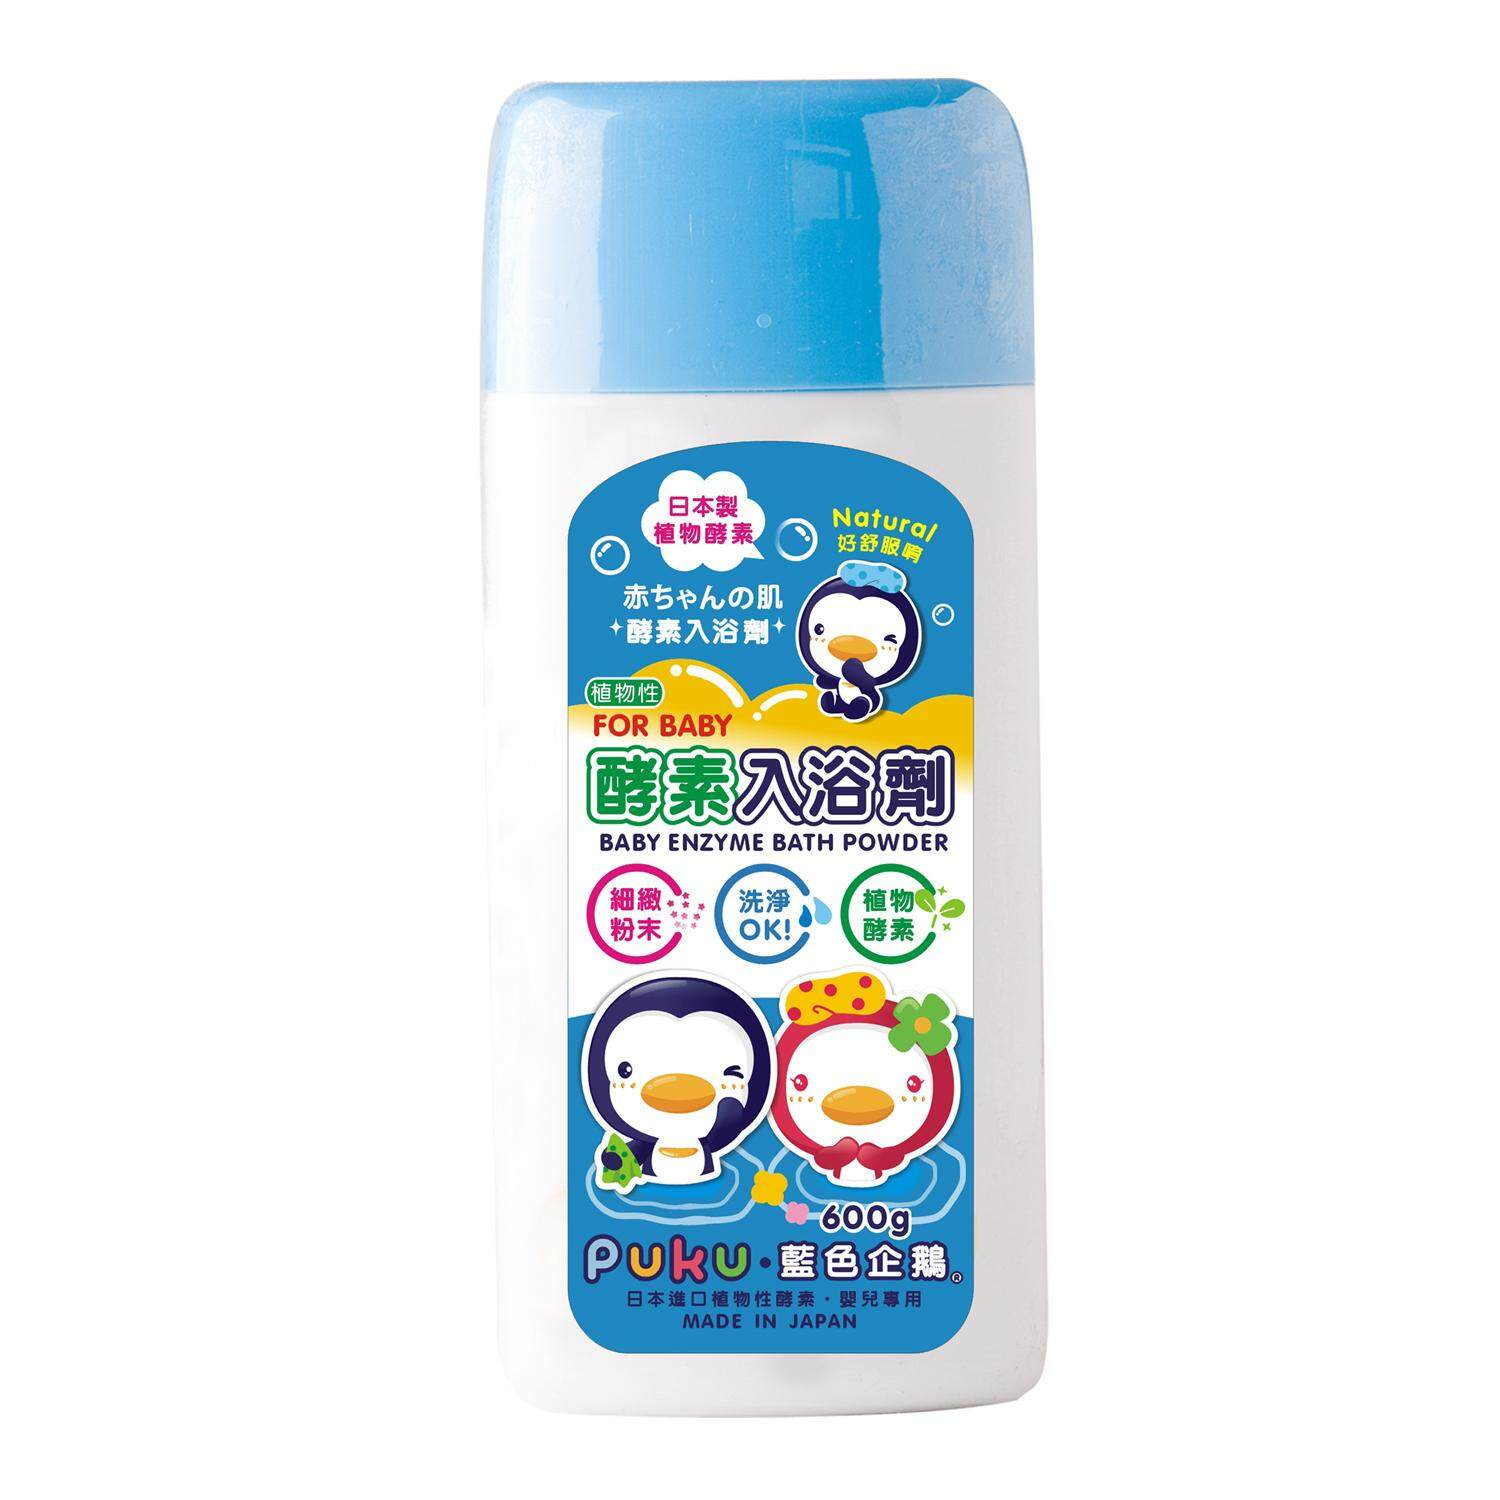 Puku Baby Enzyme Bath powder 600g